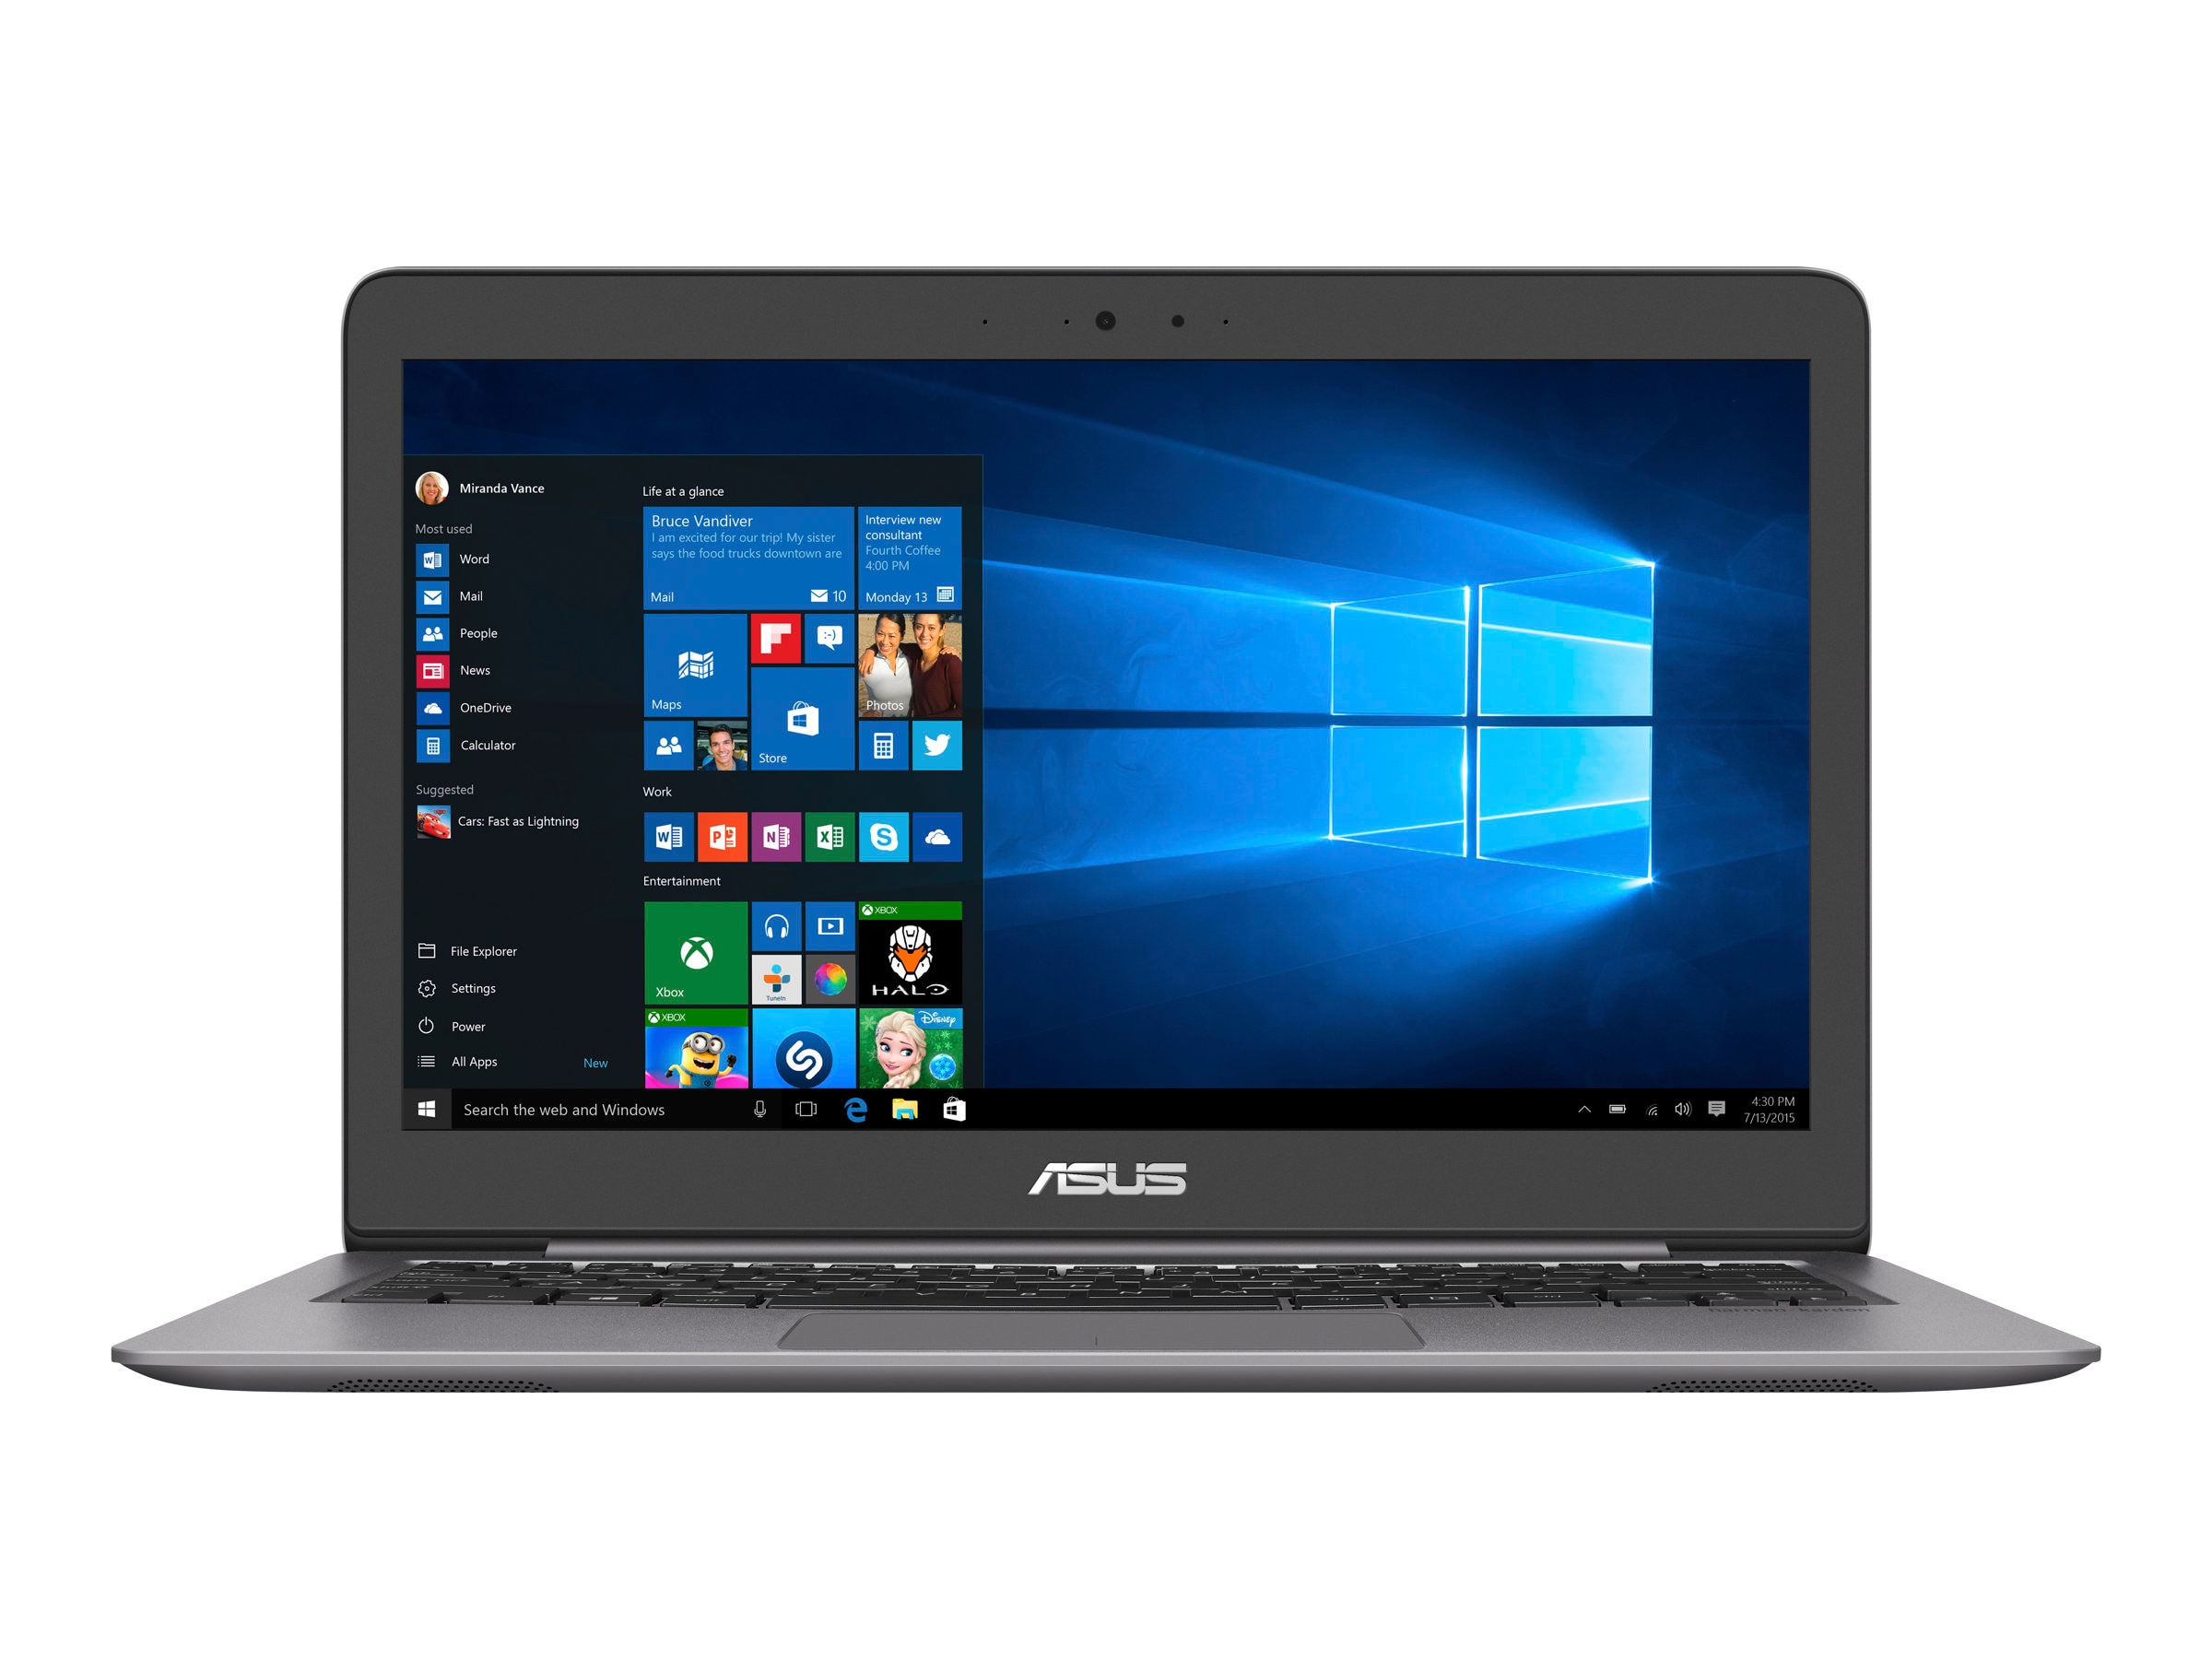 Asus Notebook PC Core i5-6198DU 8GB 1TB 15.6 W10, 90NB0CJ1-M01990